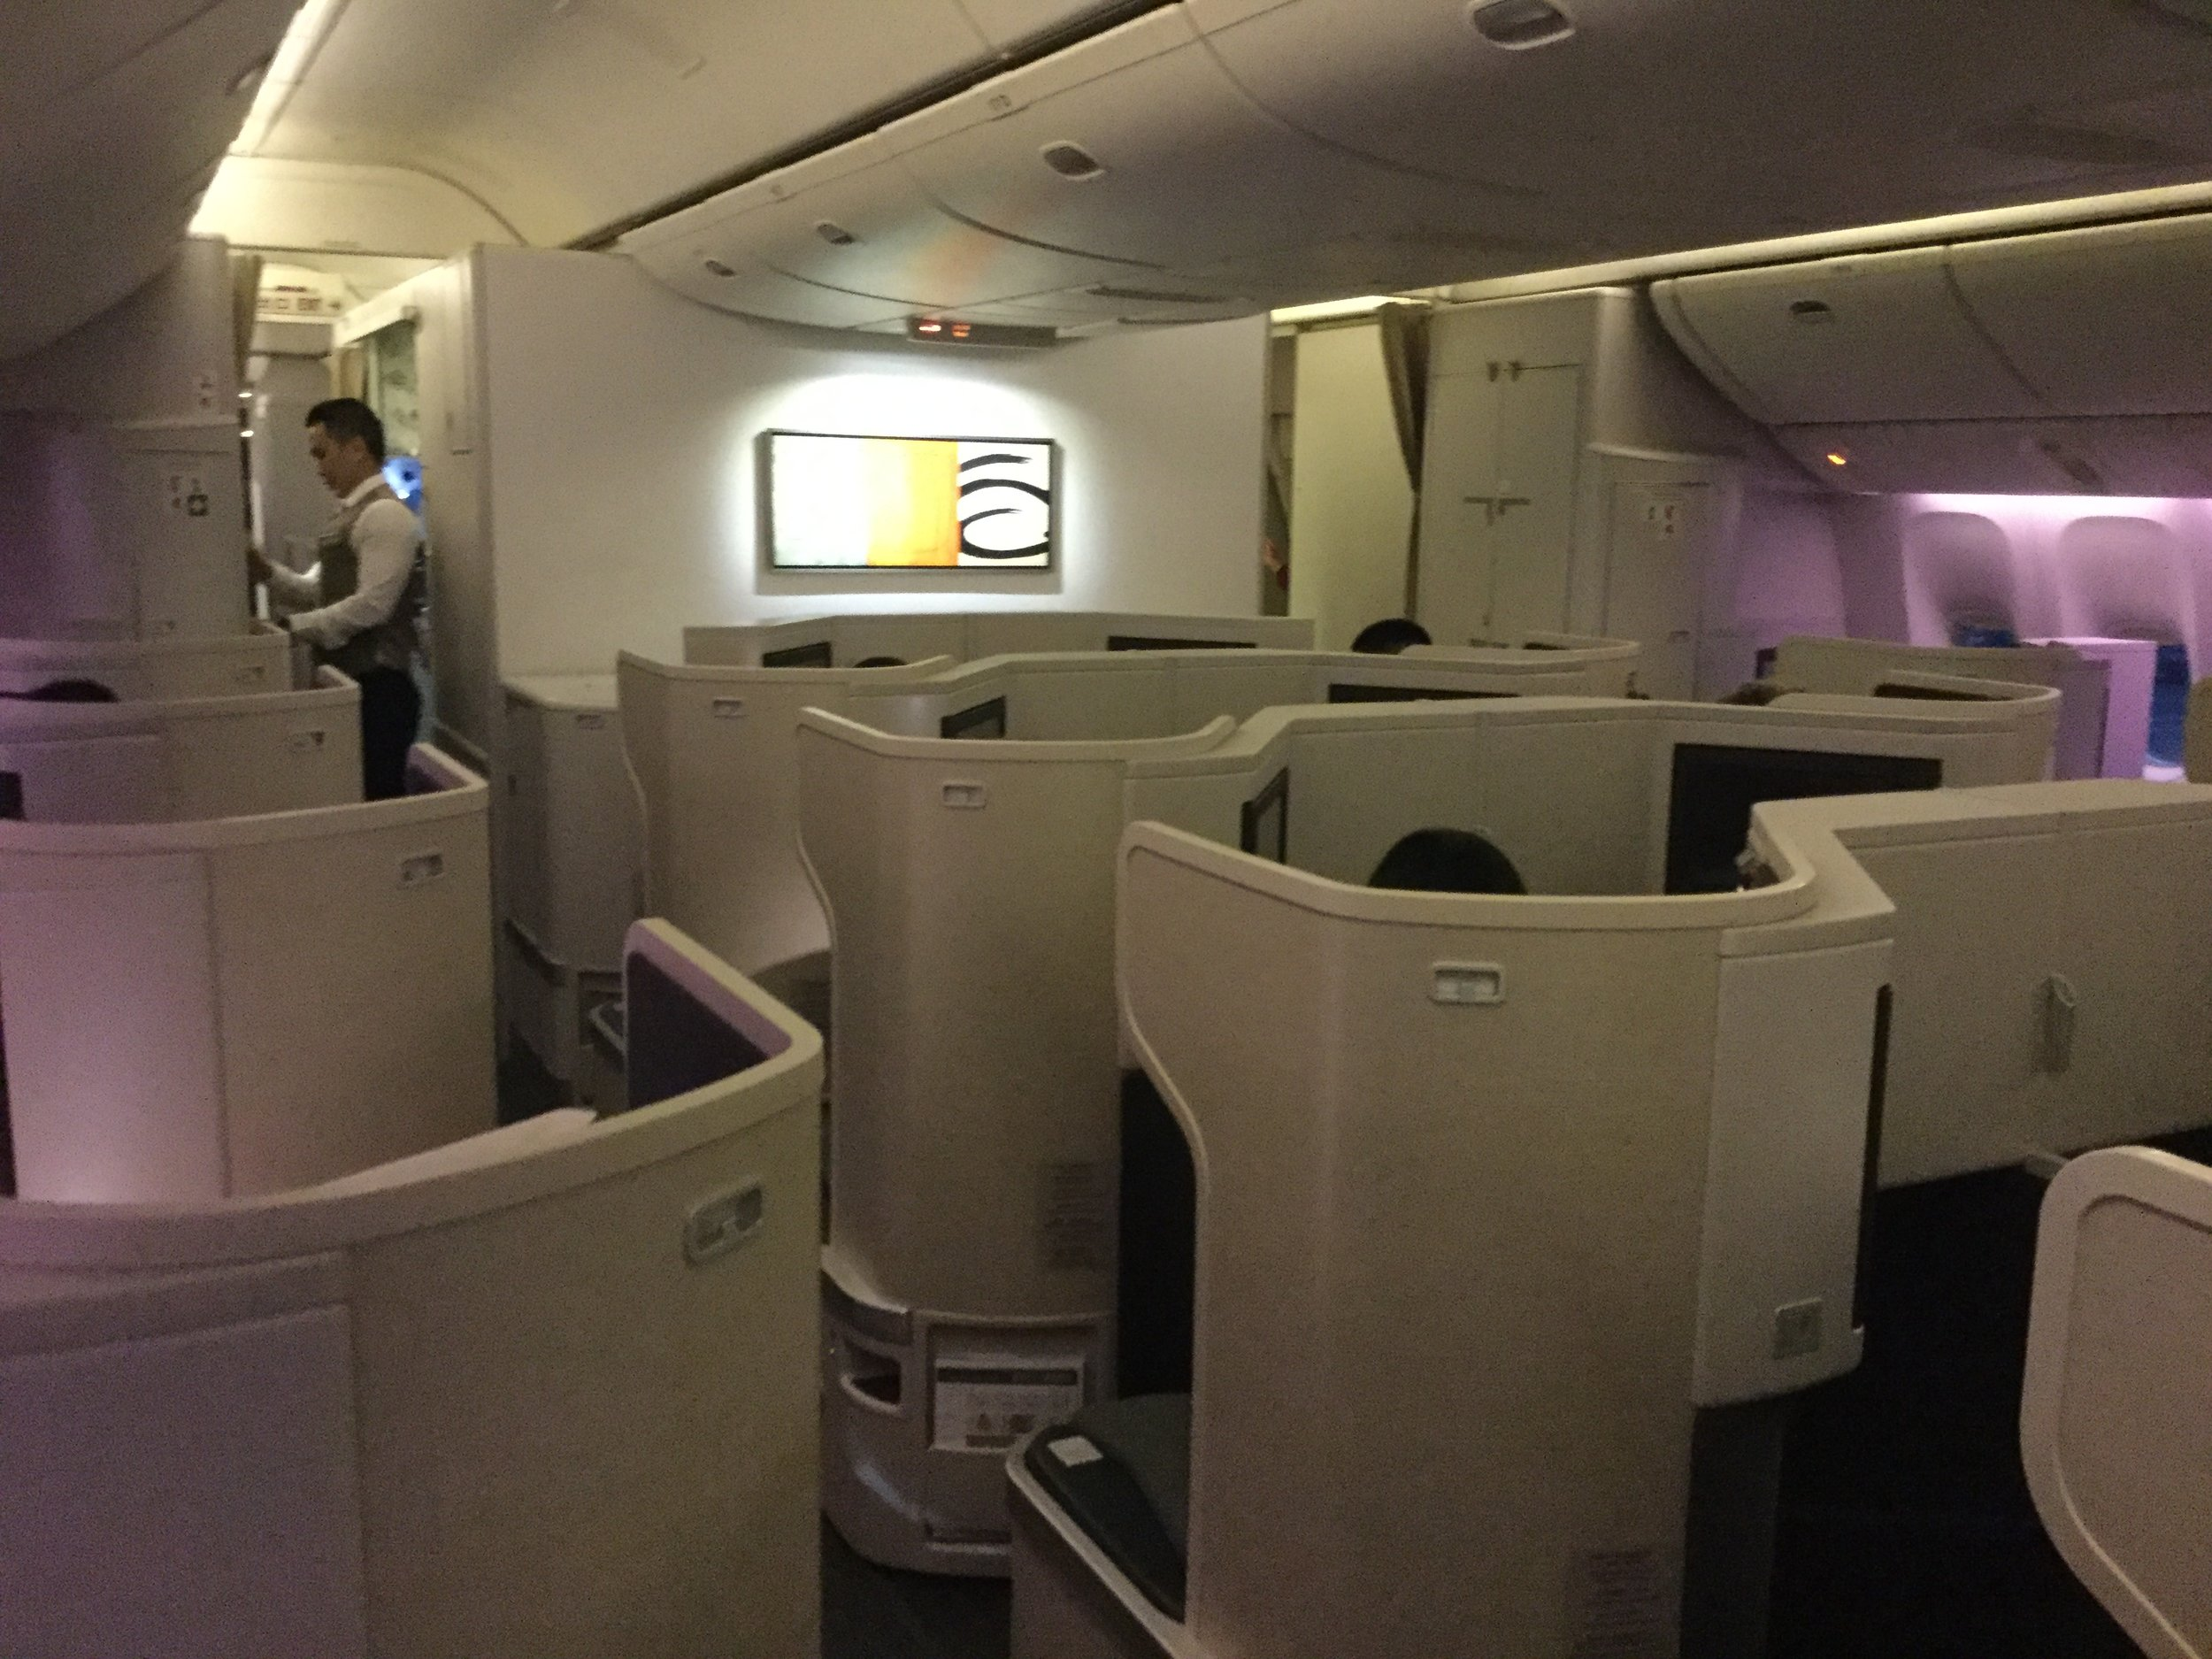 The Boeing 777-300 has a 1-2-1 configuration. All seats have aisle access.